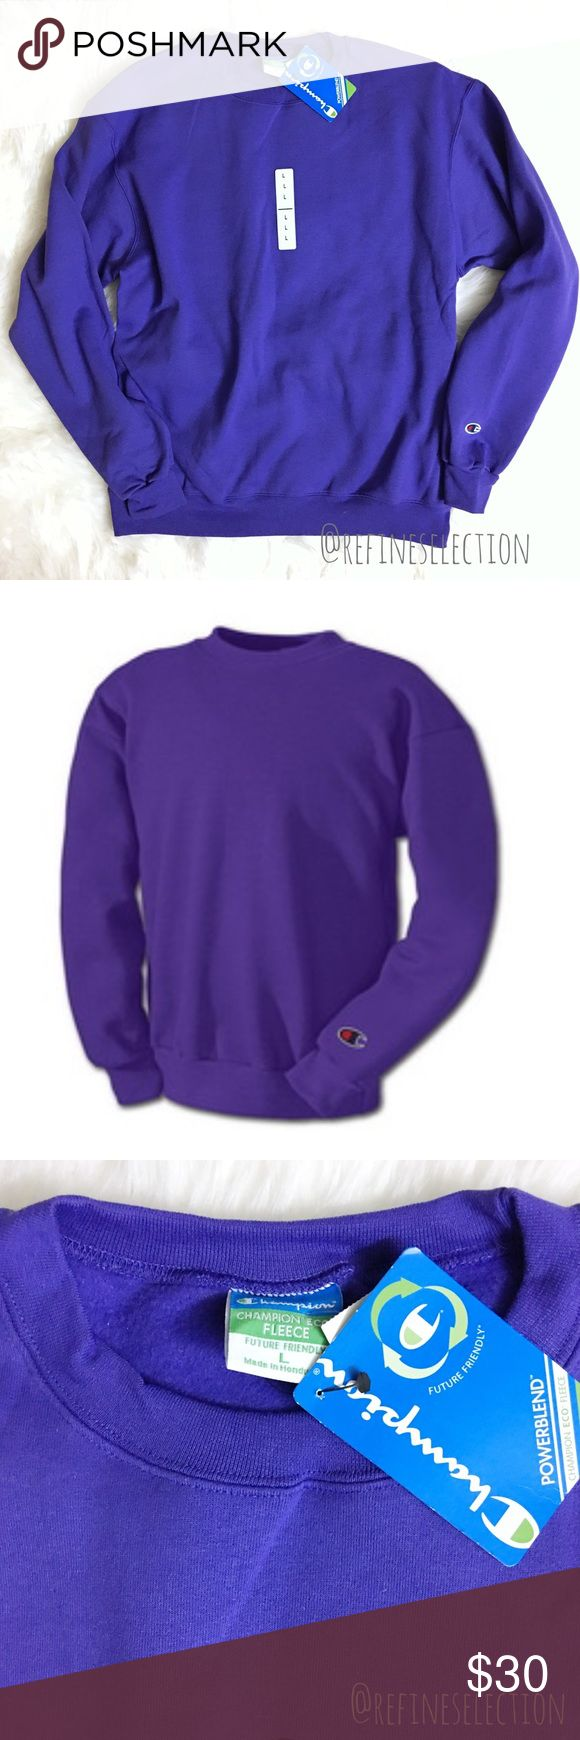 Champion Eco Fleece Purple Crewneck Sweatshirt Brand new with tags, Men's size Large. This Champion Eco Fleece Purple Crew Sweatshirt is classic and so trend right now! The purple color adds a vintage, retro feel. Has the Champion iron on logo on the left sleeve. Interior is made of brushed fleece, which makes this so soft and warm. Made of 50% Cotton and 50% Polyester. Champion Shirts Sweatshirts & Hoodies